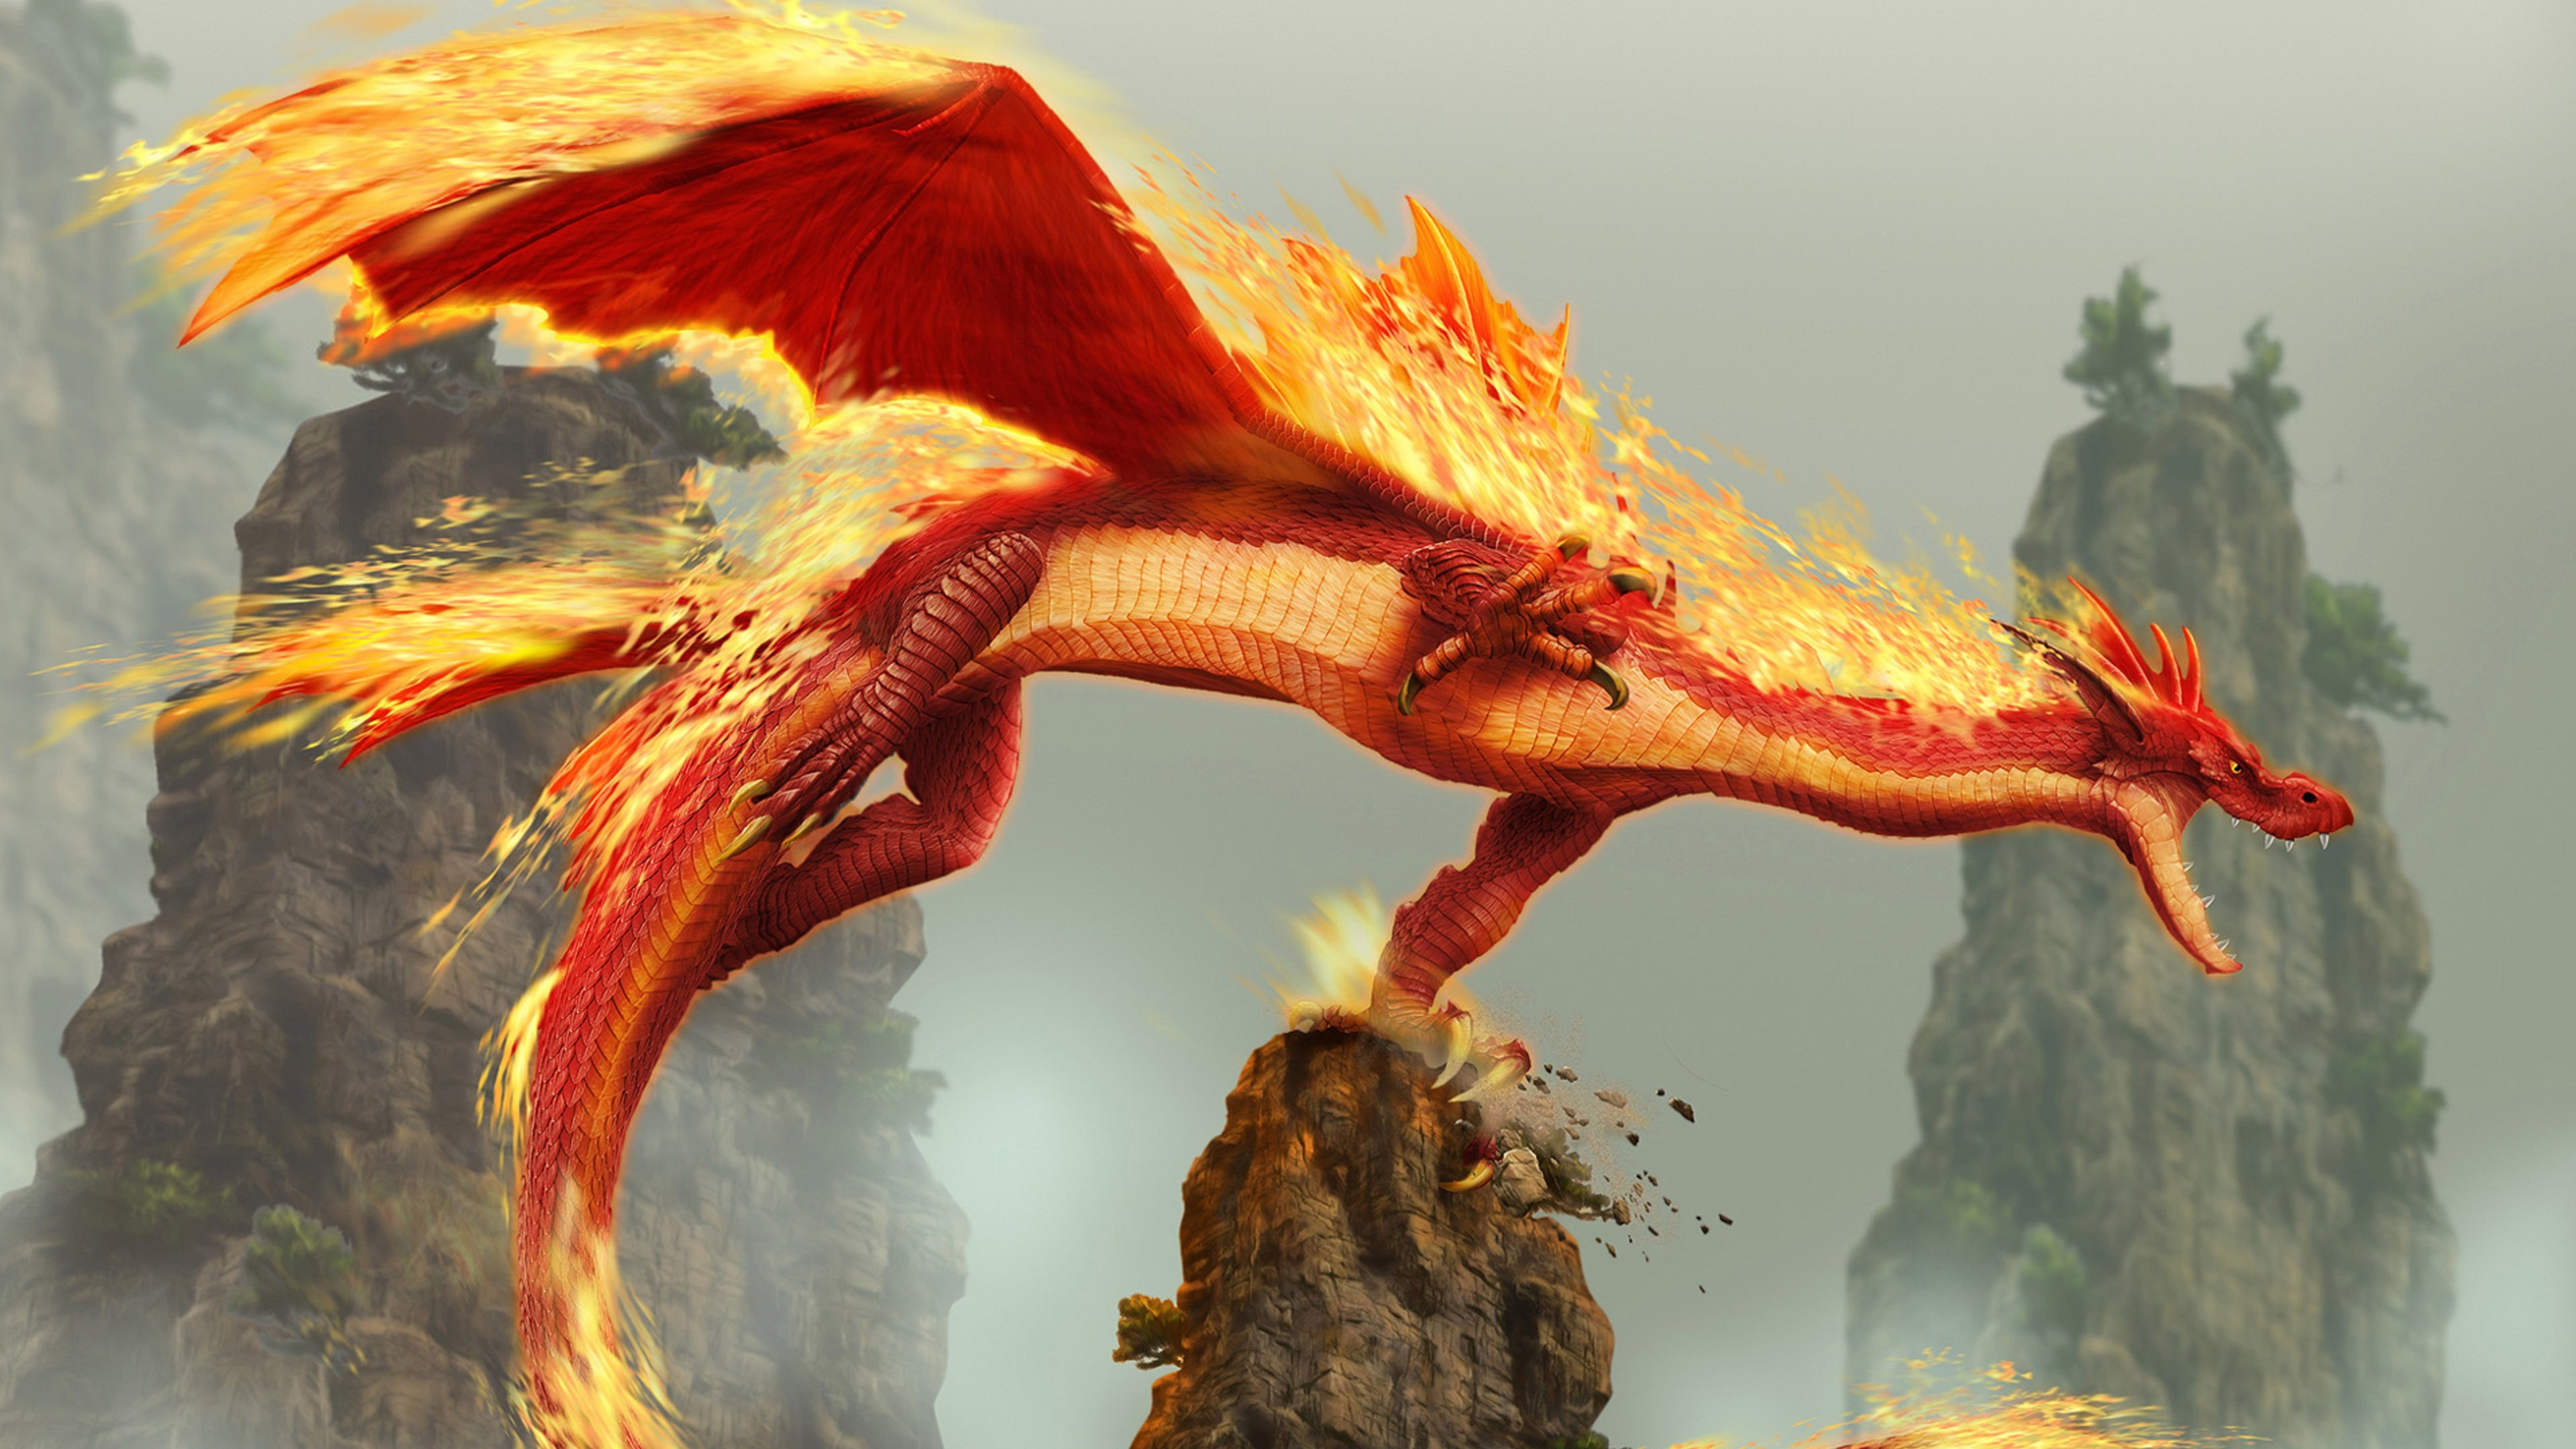 red fire dragon creature fantasy monster 4k 1540751166 - Red Fire Dragon Creature Fantasy Monster 4k - hd-wallpapers, fantasy wallpapers, dragon wallpapers, digital art wallpapers, creature wallpapers, artwork wallpapers, artist wallpapers, 4k-wallpapers